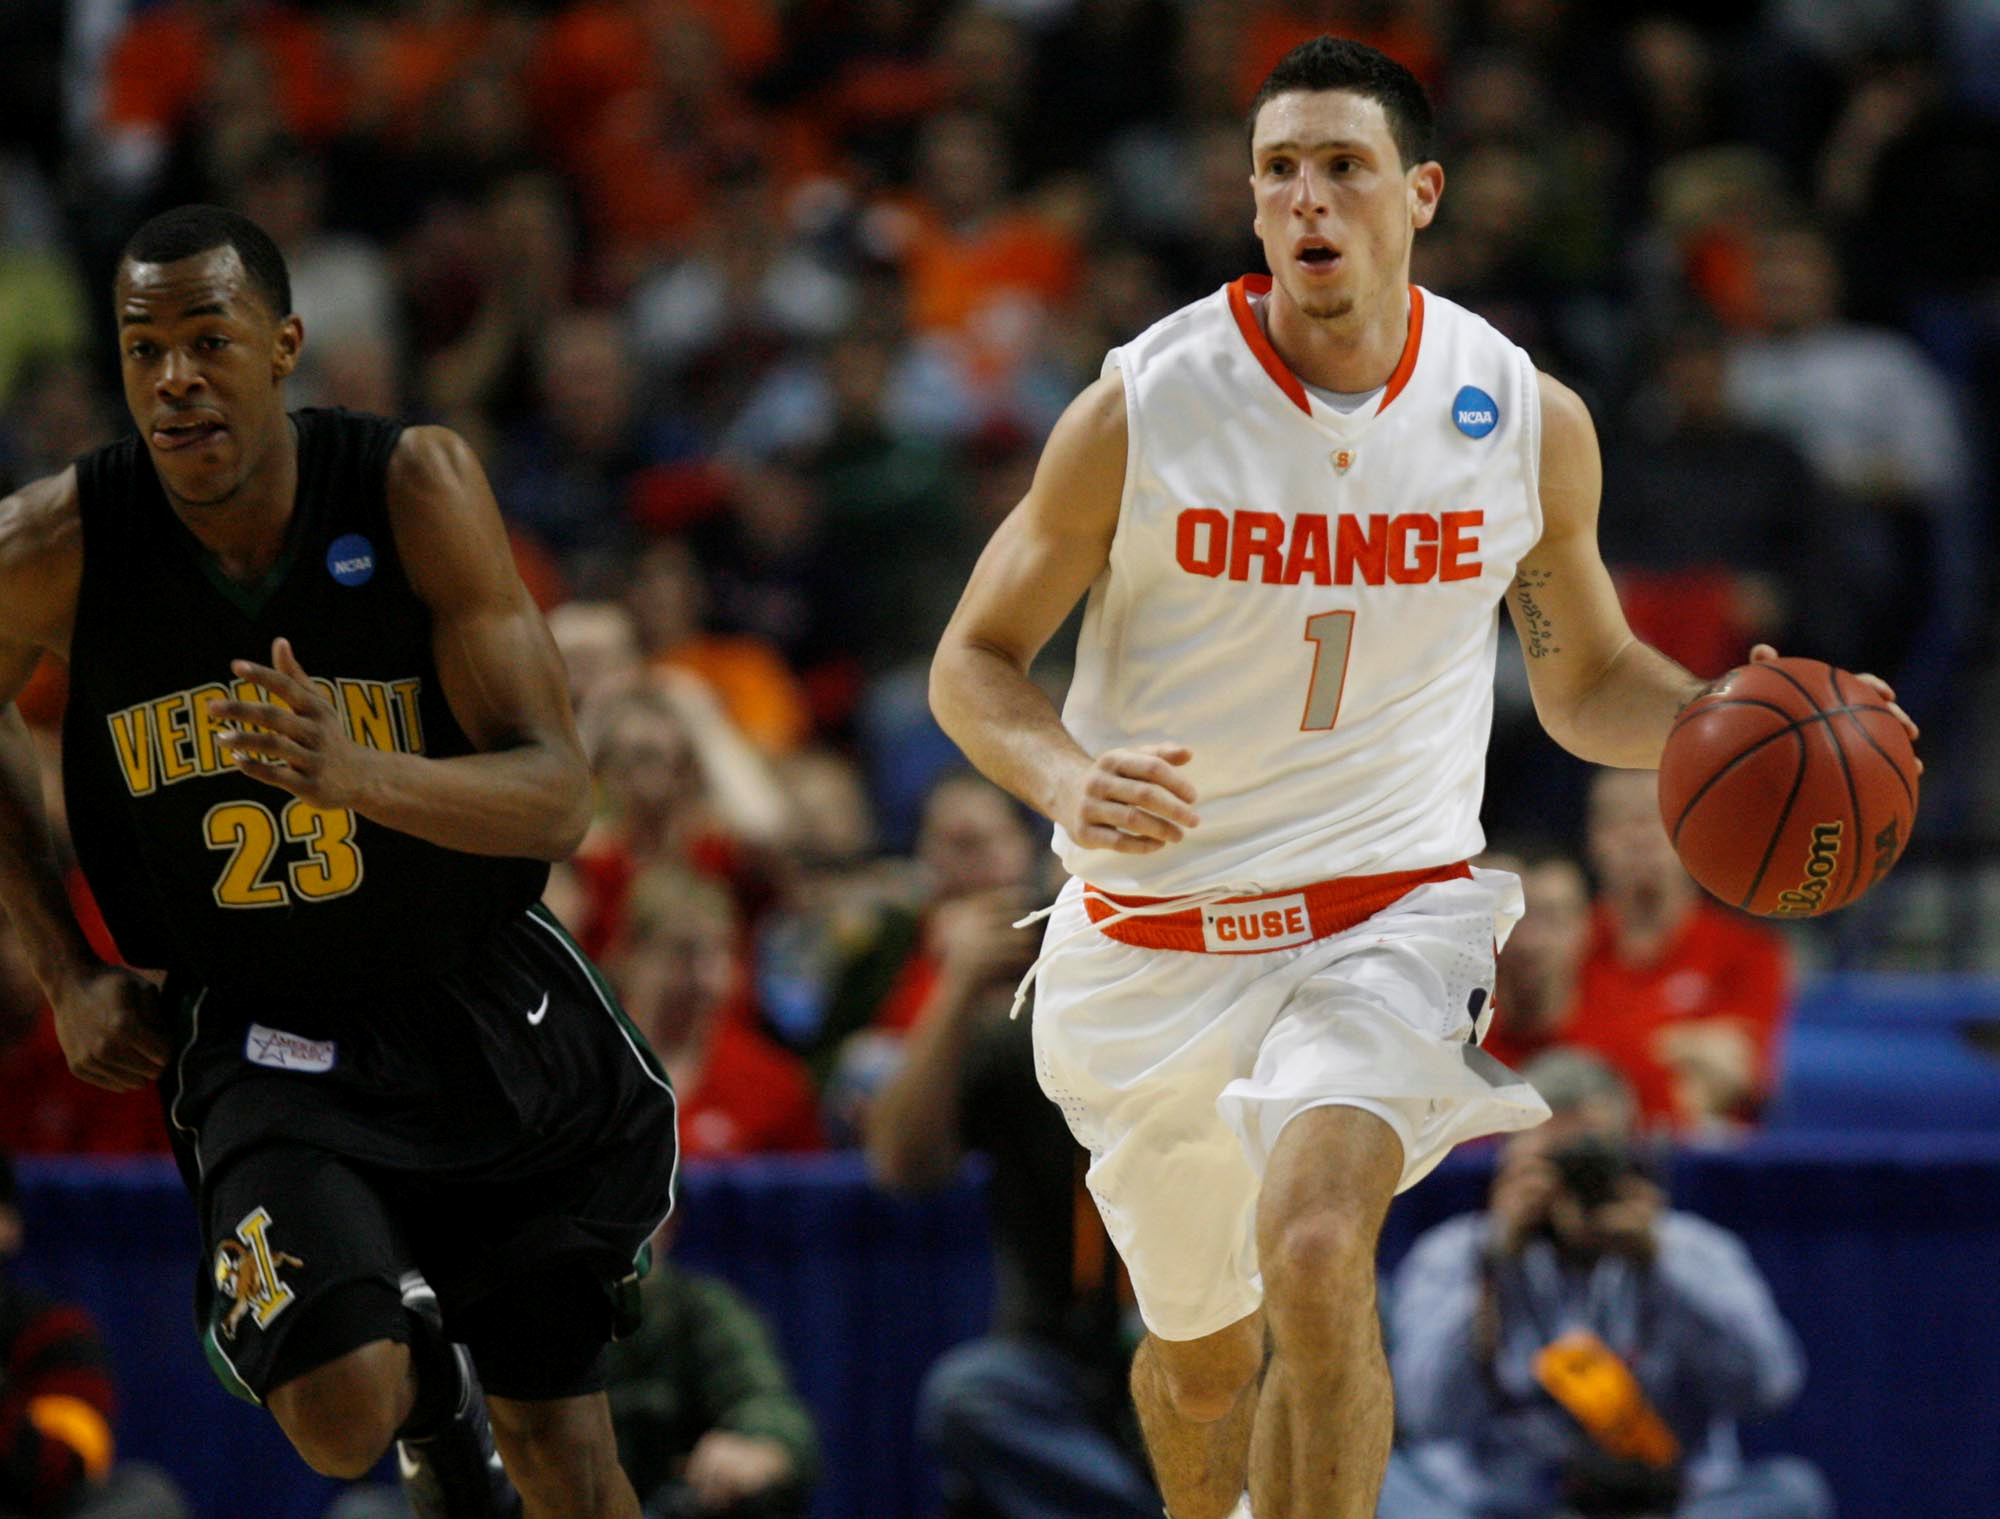 Syracuse's Andy Rautins brings the ball up court as Vermont's Marquis Blakely trails. (John Hickey/Buffalo News}